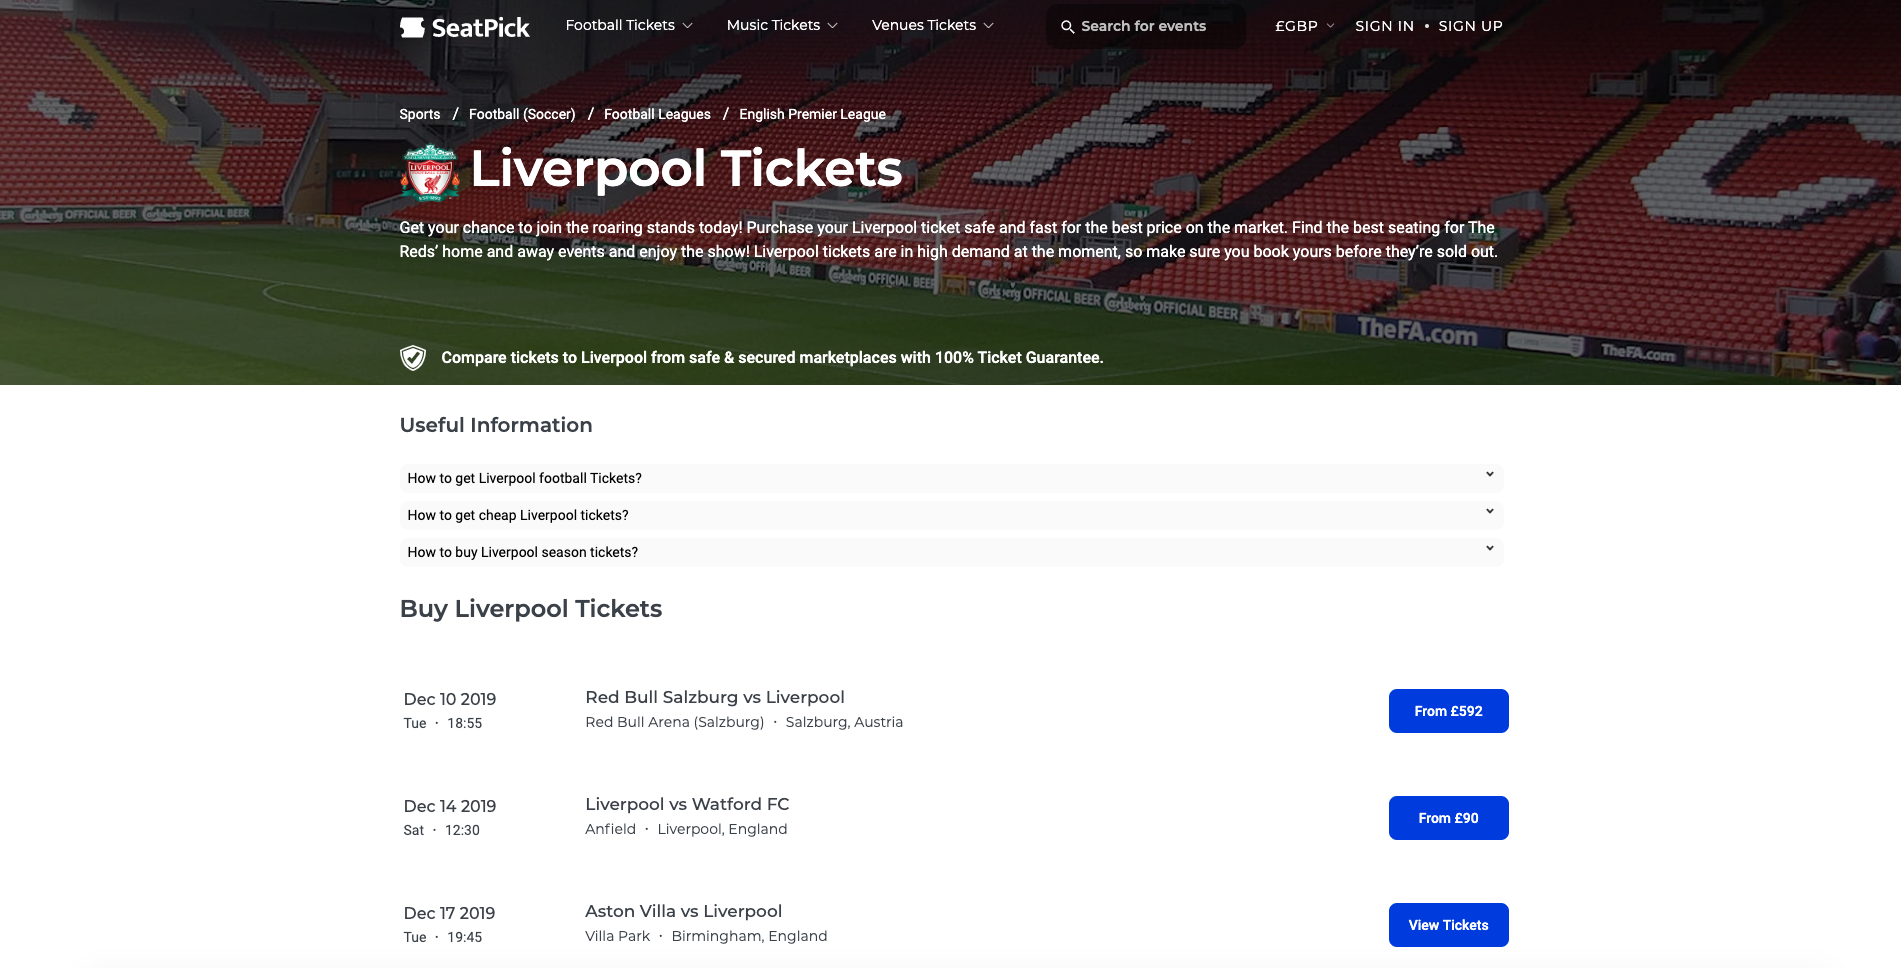 eeea8768a53260396893964adfc84320 - How To Get Liverpool Tickets Without Being A Member